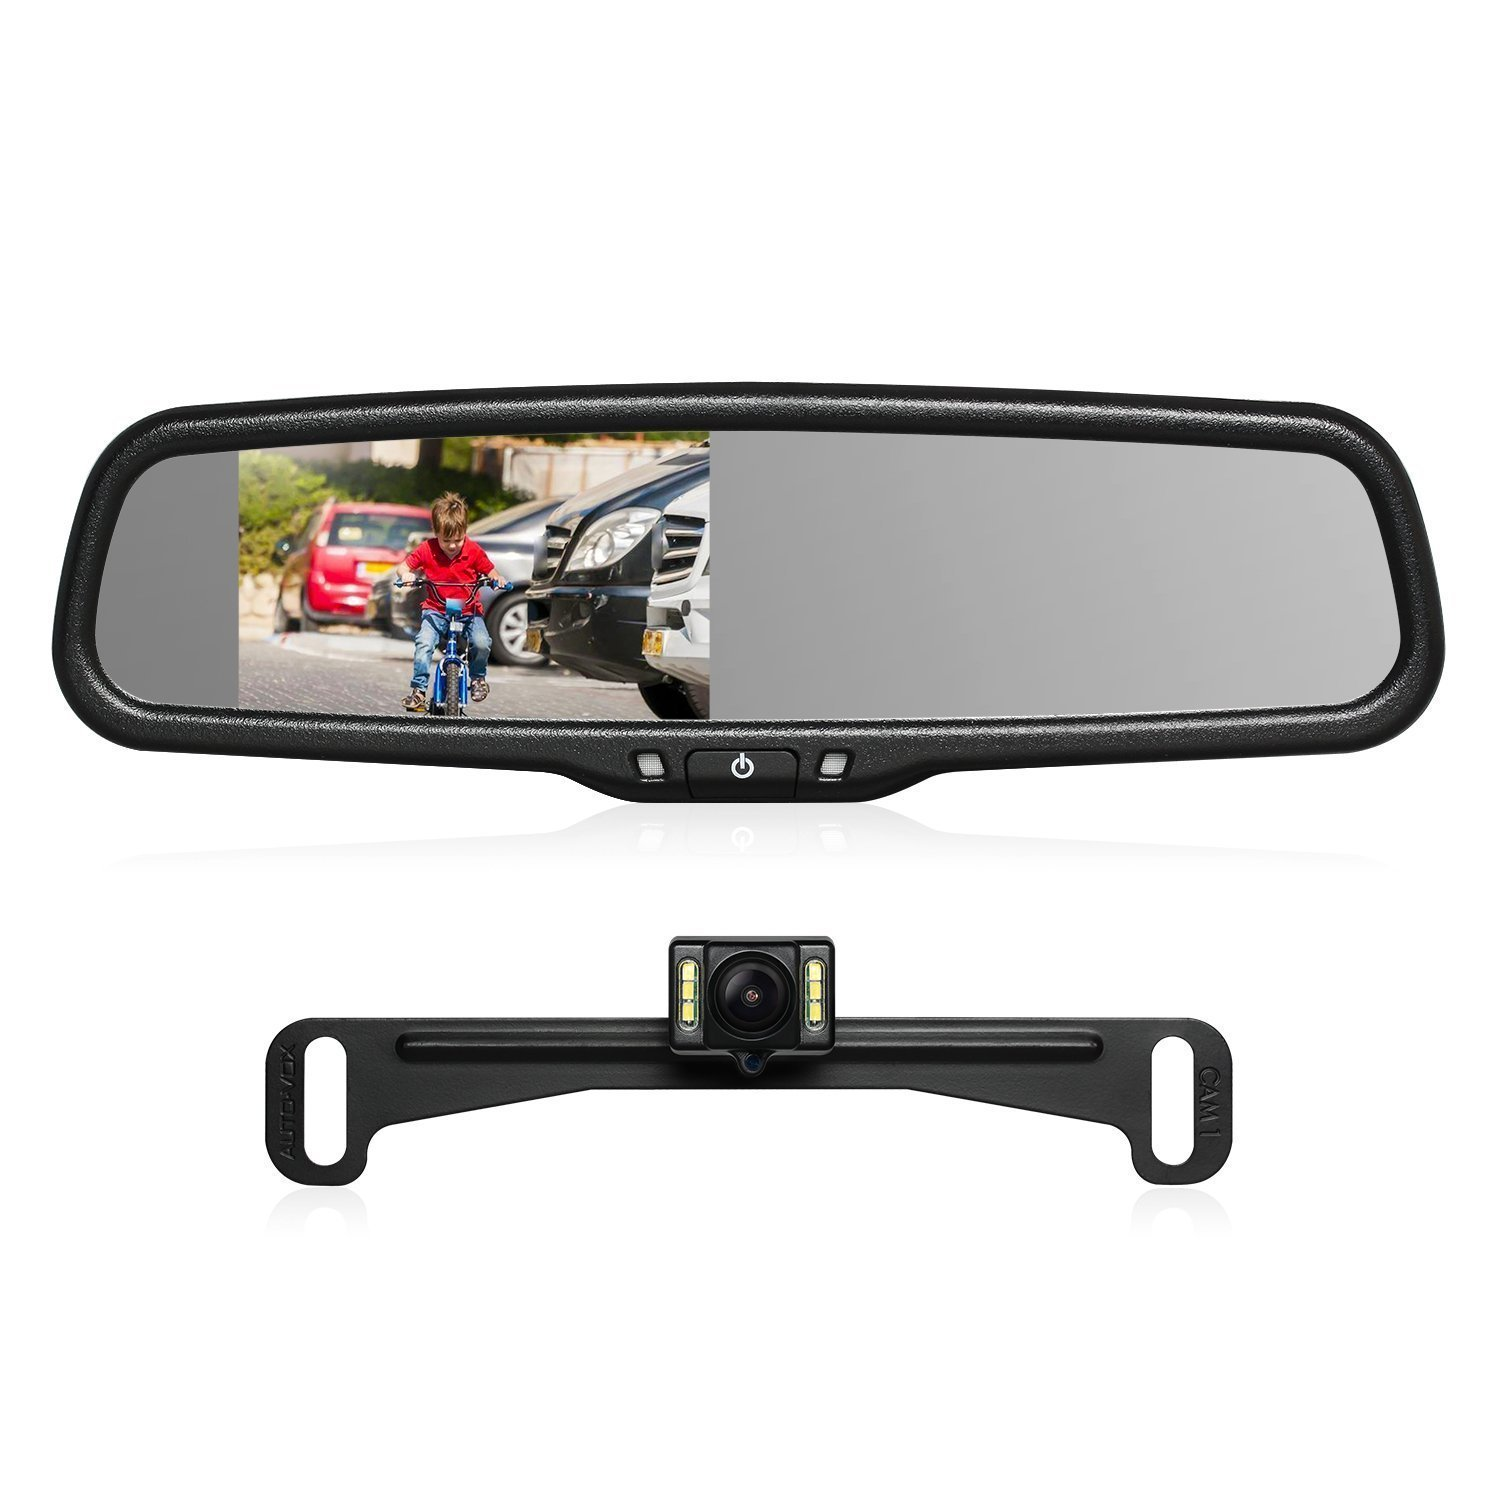 "AUTO-VOX T2 Backup Camera Kit 4.3"" LCD OEM Car Rearview Mirror Monitor Parking and Reverse Assist with IP 68 Waterproof LED Night Vision Rear View License Plate Back up Car Camera for Cars Trucks RVs"